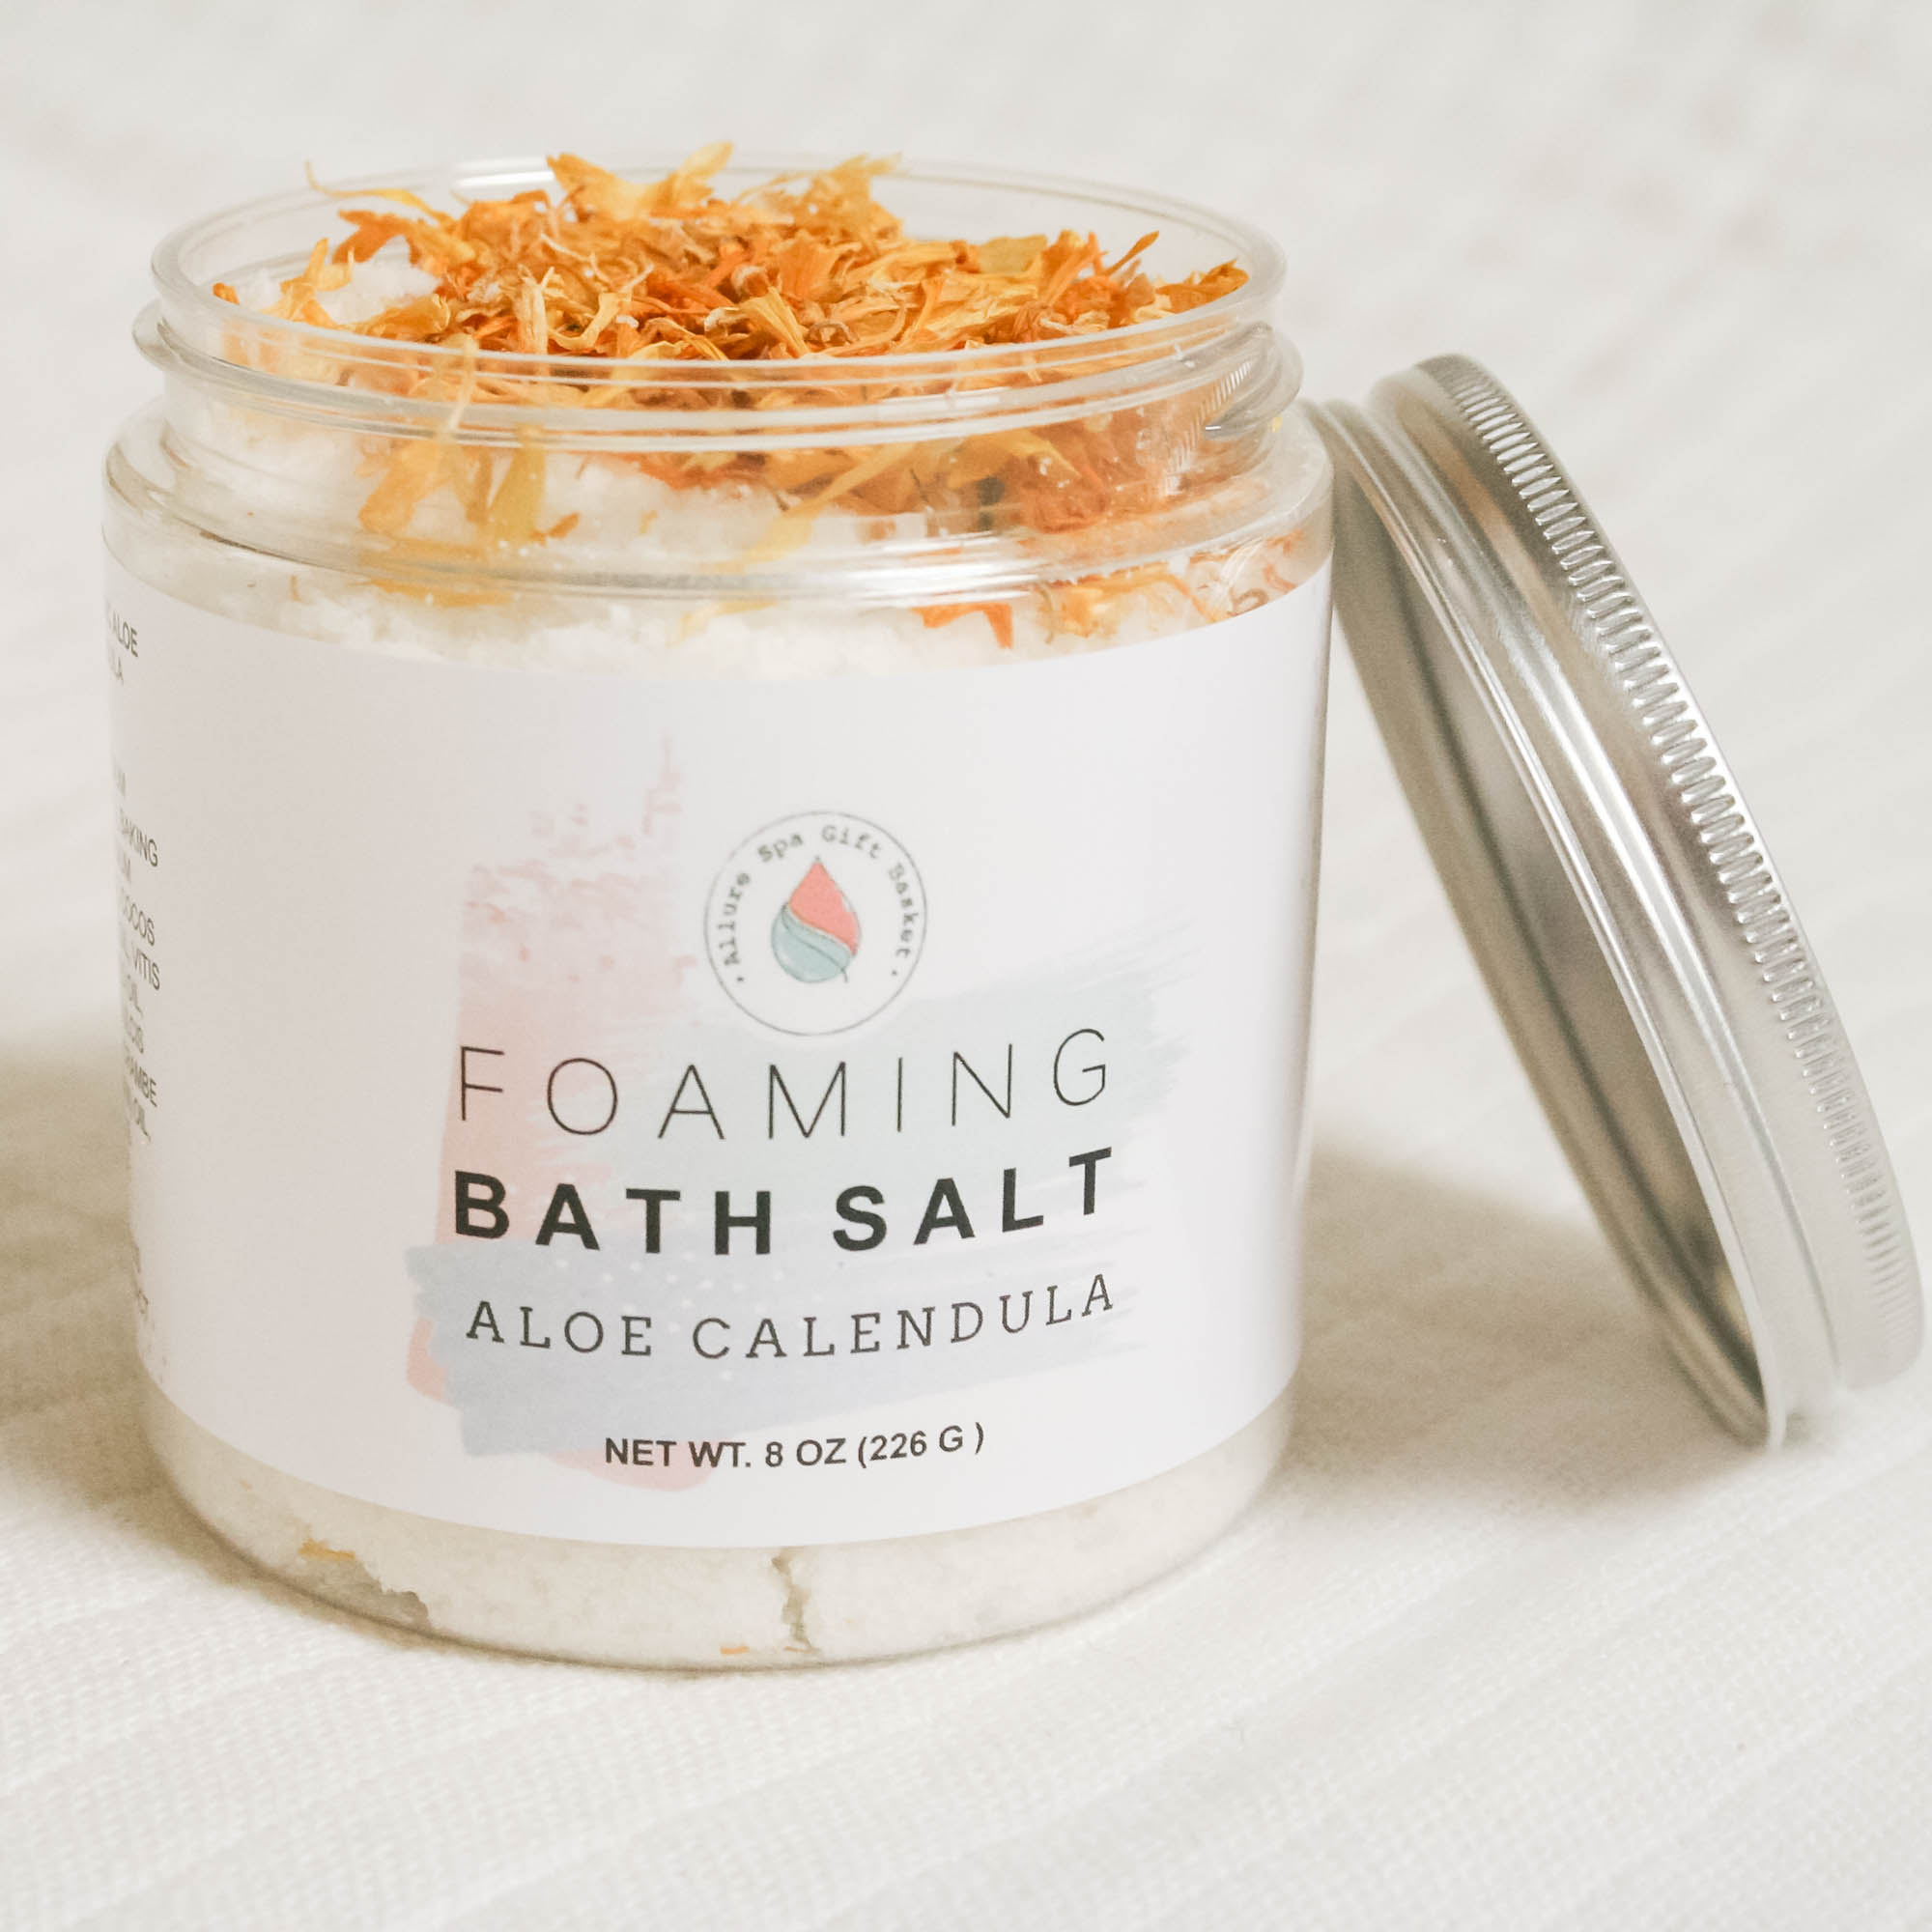 Aloe Calendula Foaming Bath Salt